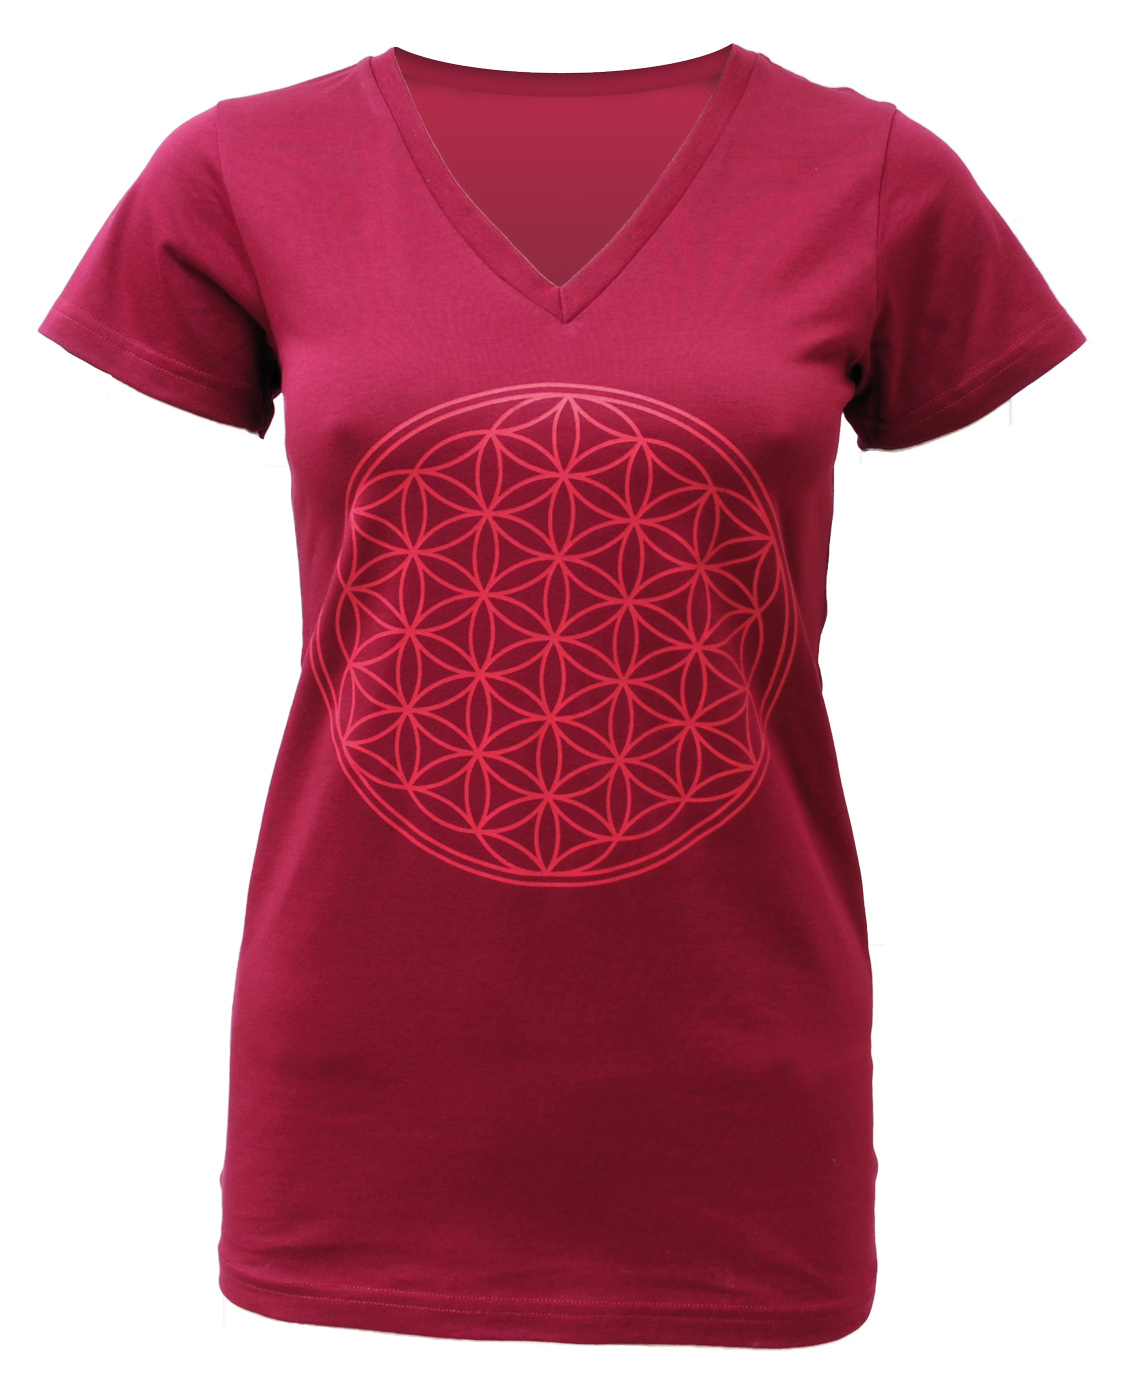 "Yogi-T-Shirt ""Flower of Life"" - bordeaux"